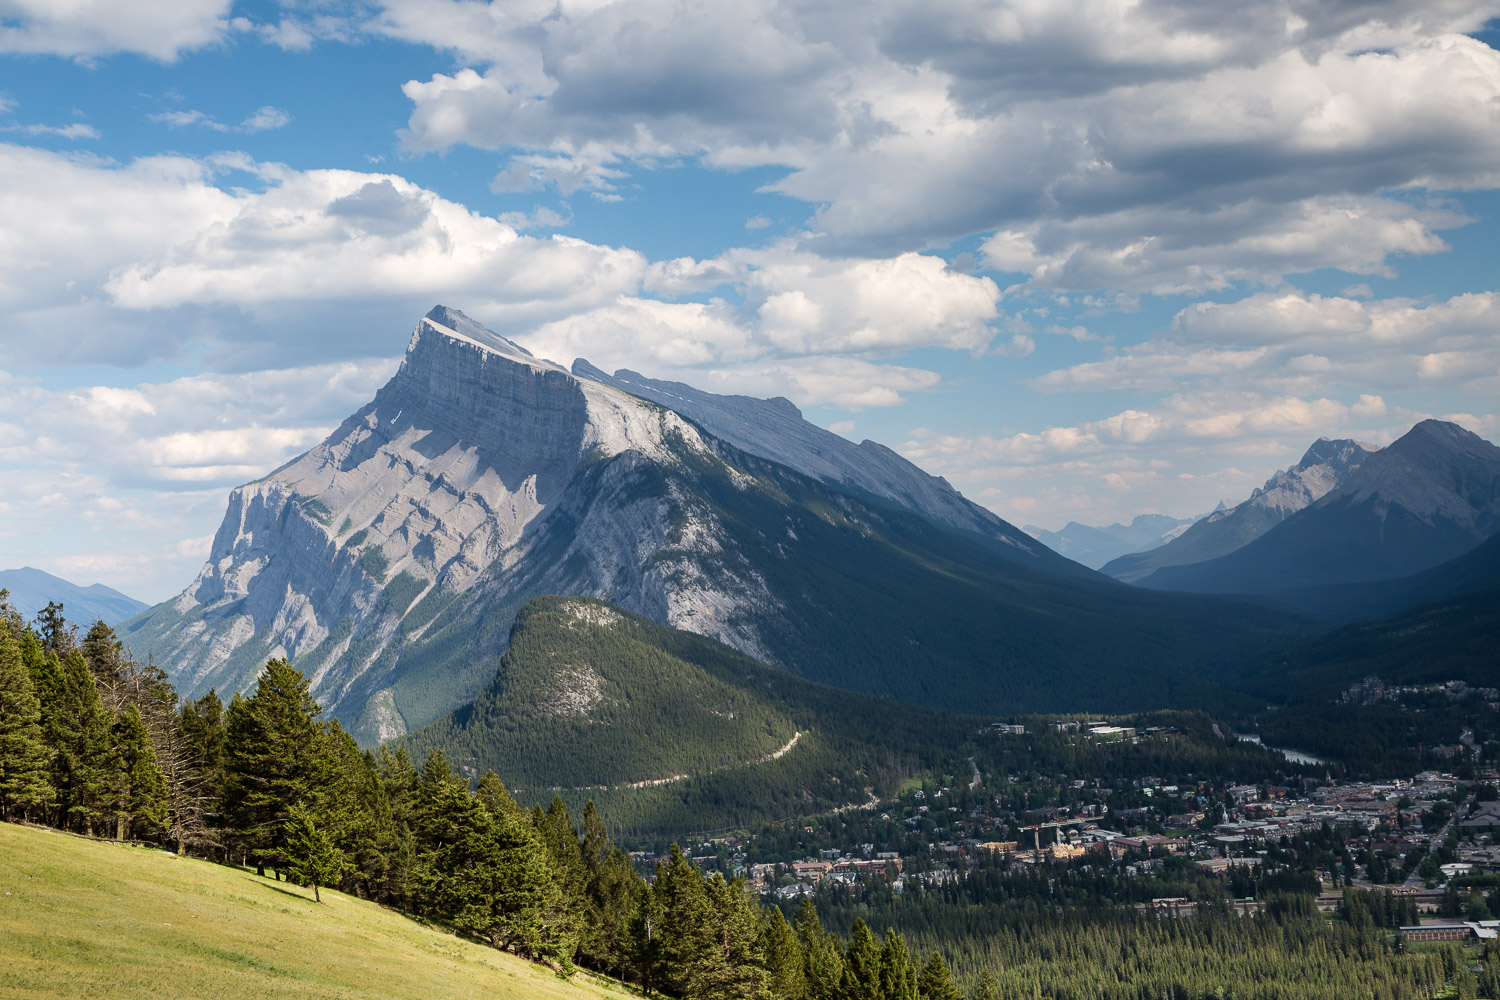 Mount Rundle with Banff below